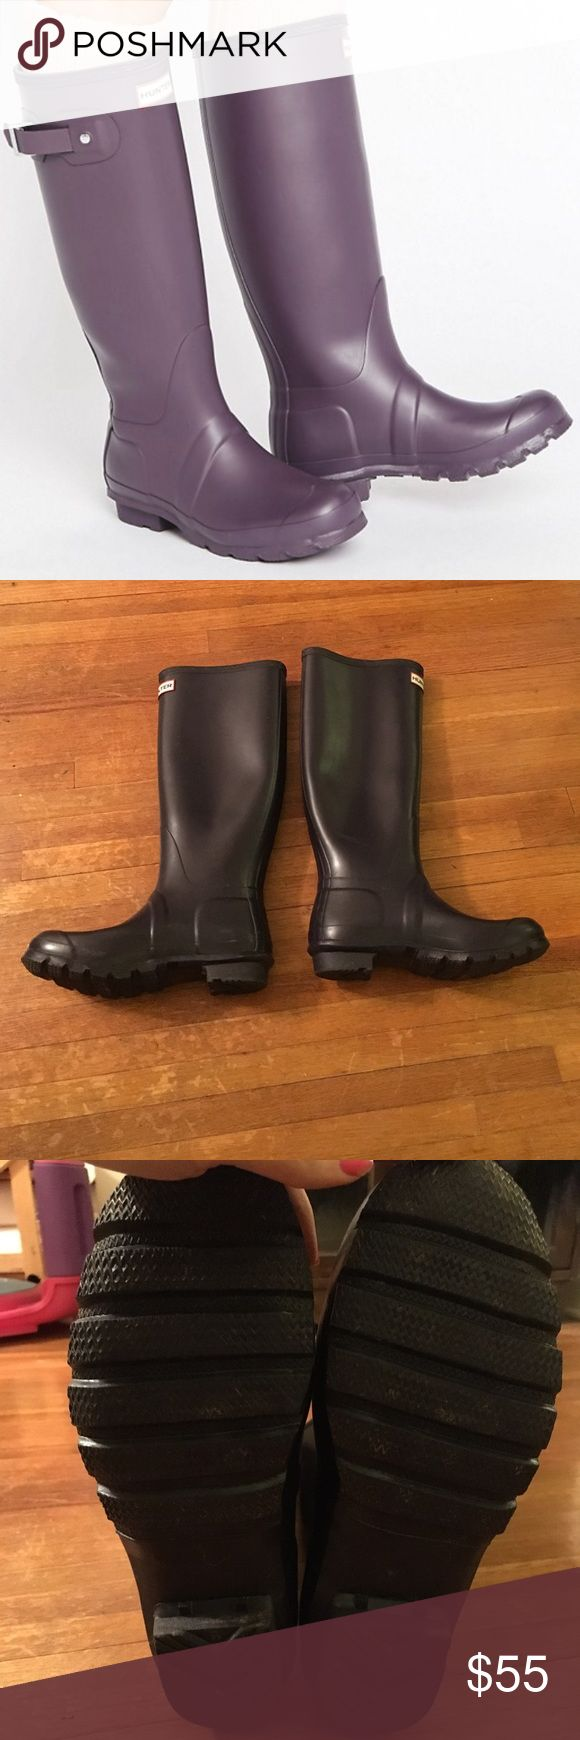 Hunter original tall Wellington-purple ocean Size 7. Only worn a few times. Dark purple color with matte finish. Great condition! Hunter Boots Shoes Winter & Rain Boots